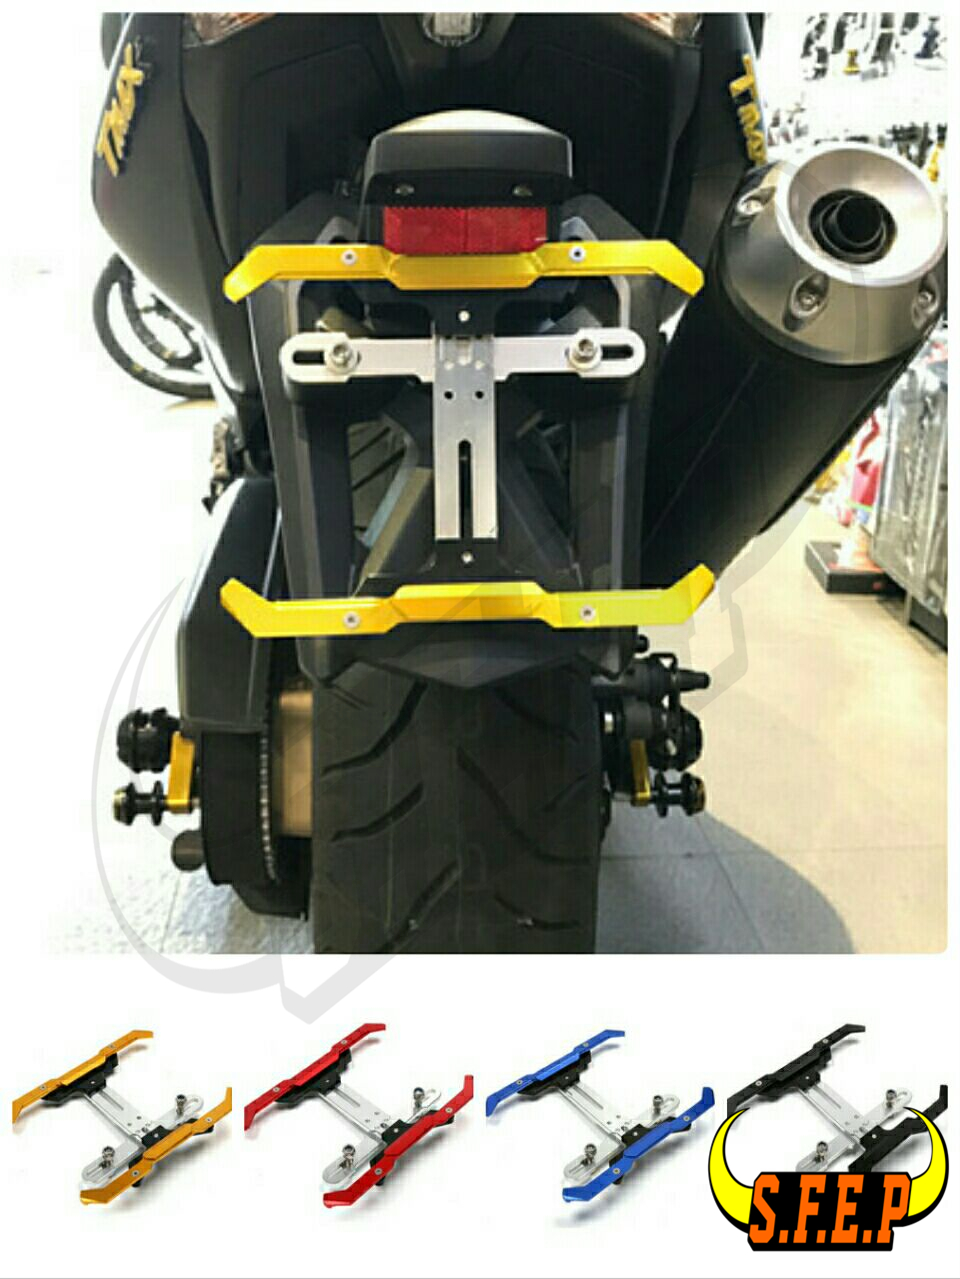 Motorcycle License Number Plate Frame Holder Adjustable Bracket For Yamaha R1 R6 R3 R25 R15 FZ1 FZ6 FZ8 MT-09 MT-10